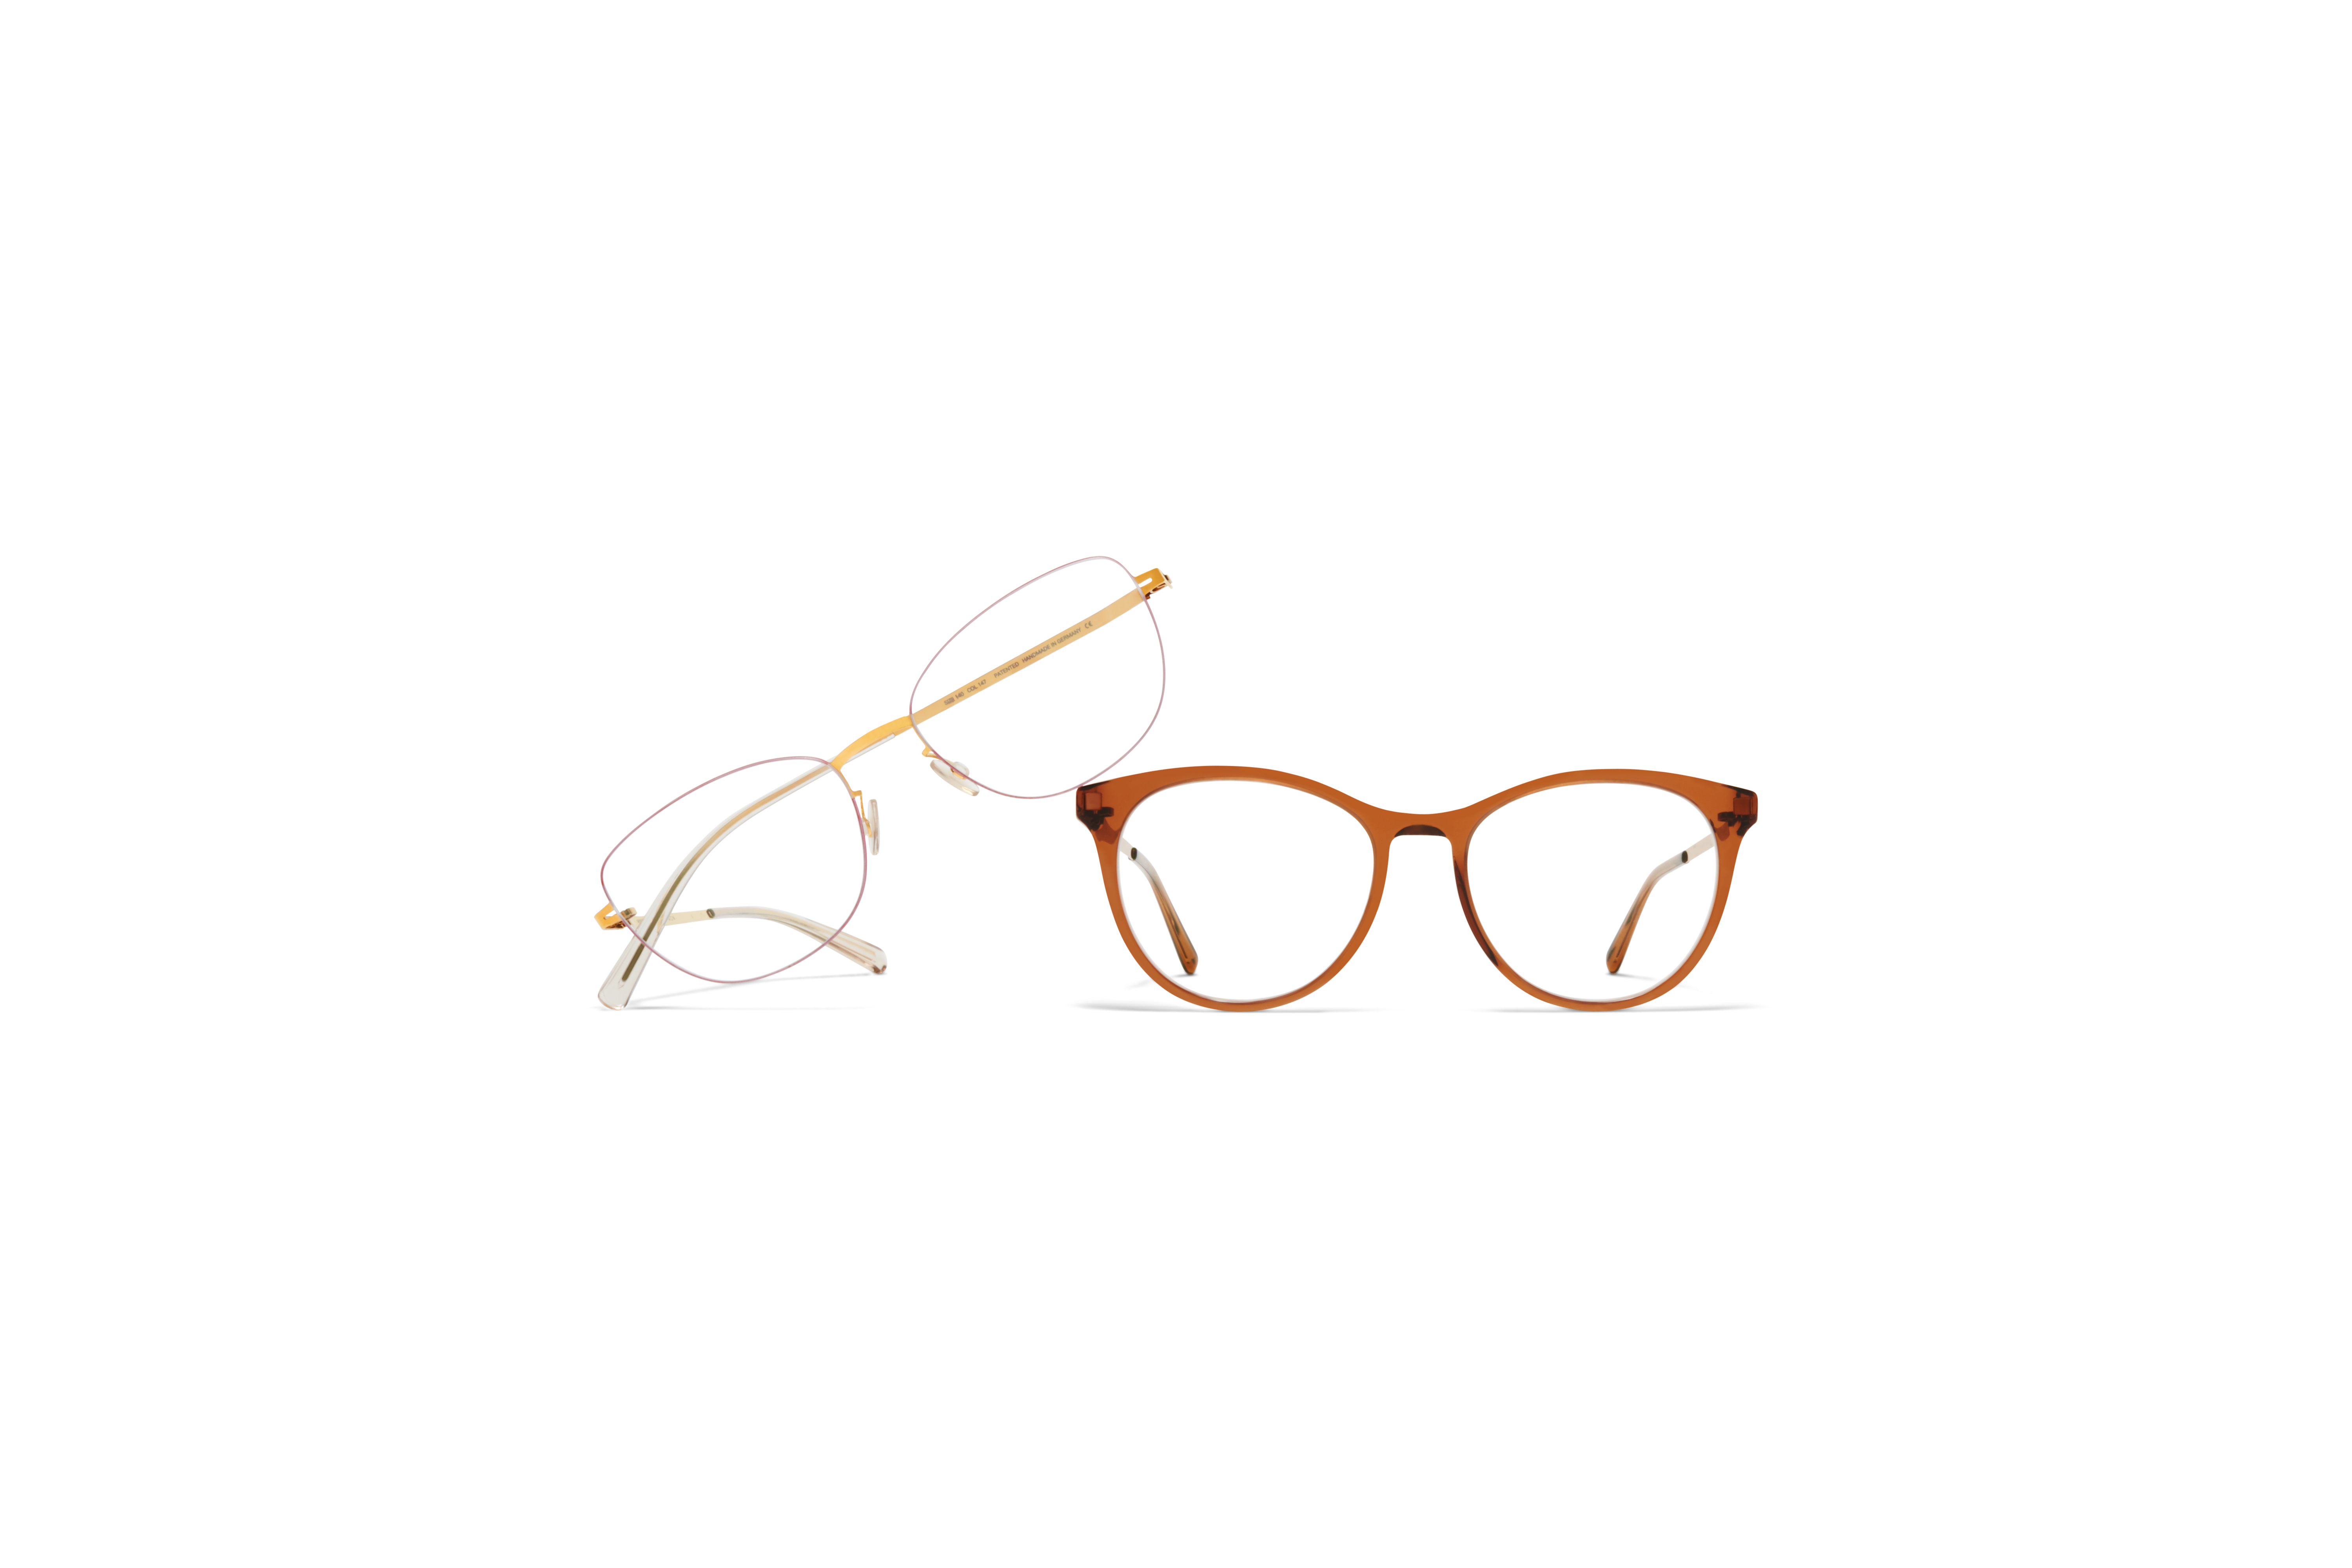 Butterfly Rx MYKITA Lite Acetate Rx Livli C73 Topaz Shiny Copper Clear MYKITA Less Rim Rx Minako Gold Coral Red Clear